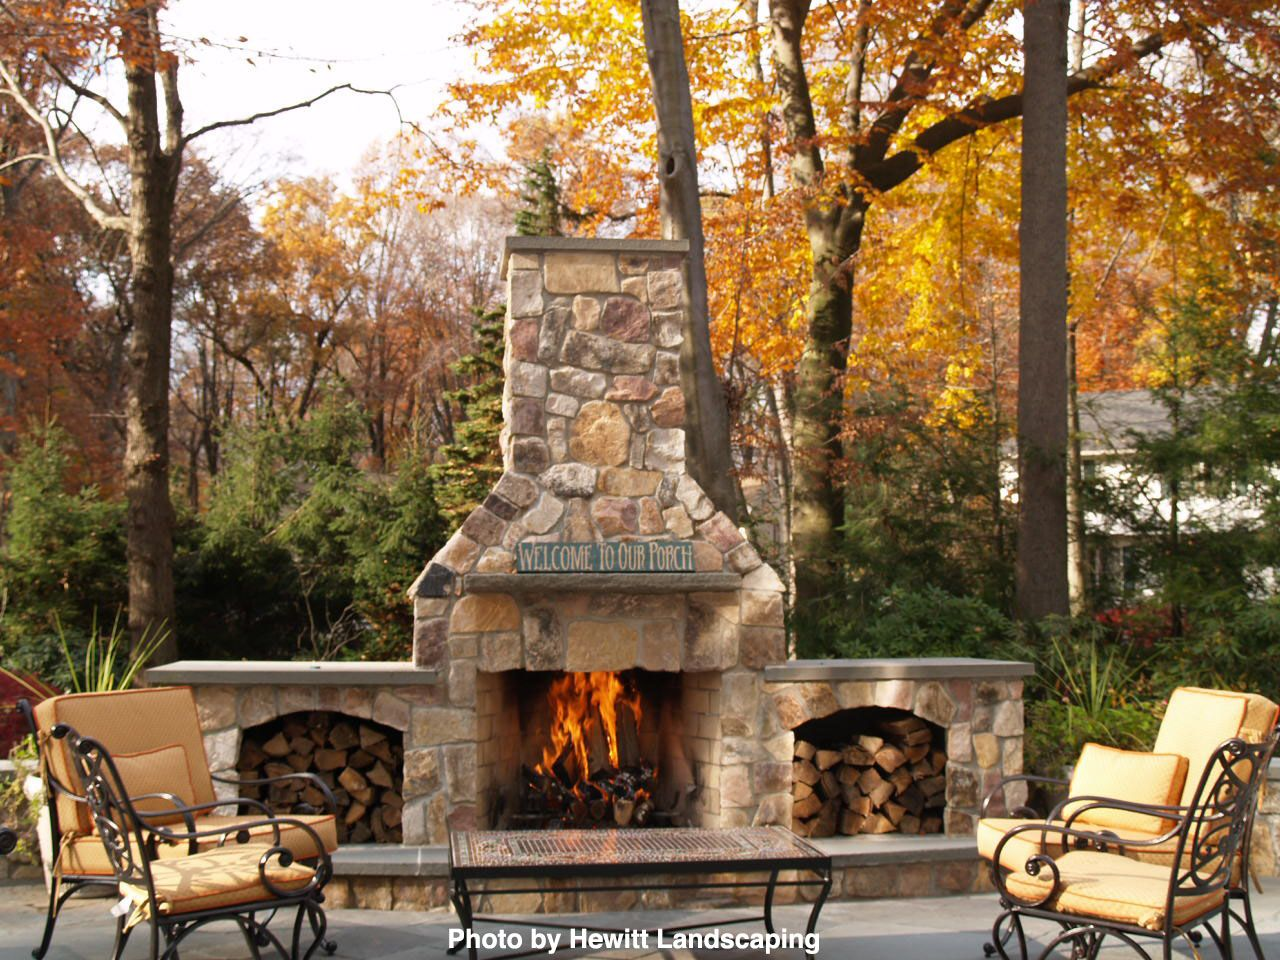 Large Brick Outdoor Fireplace With Two Covered Sections To Store